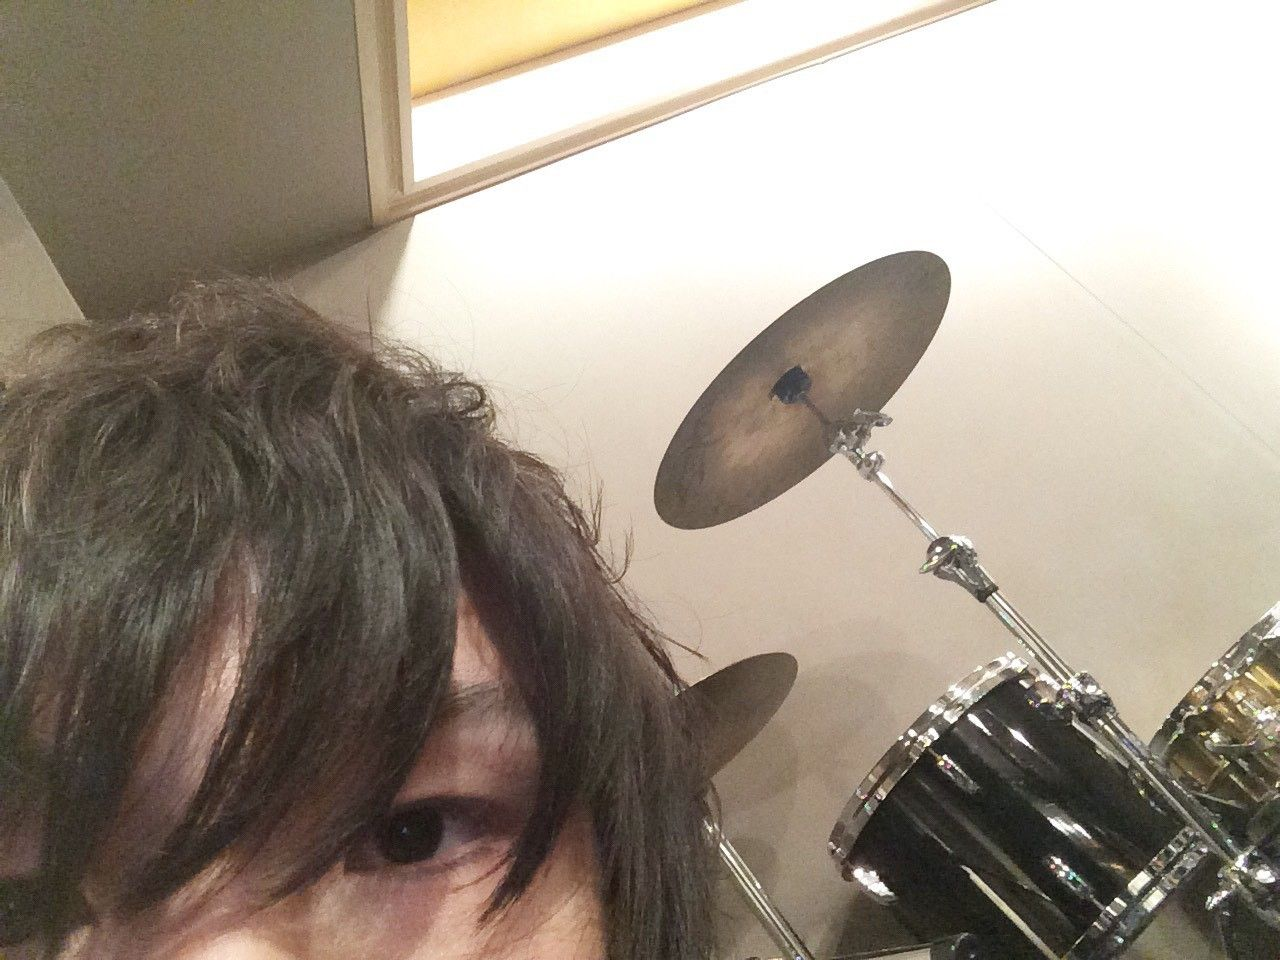 Soraru sent another picture on LINE! Still so adorable!